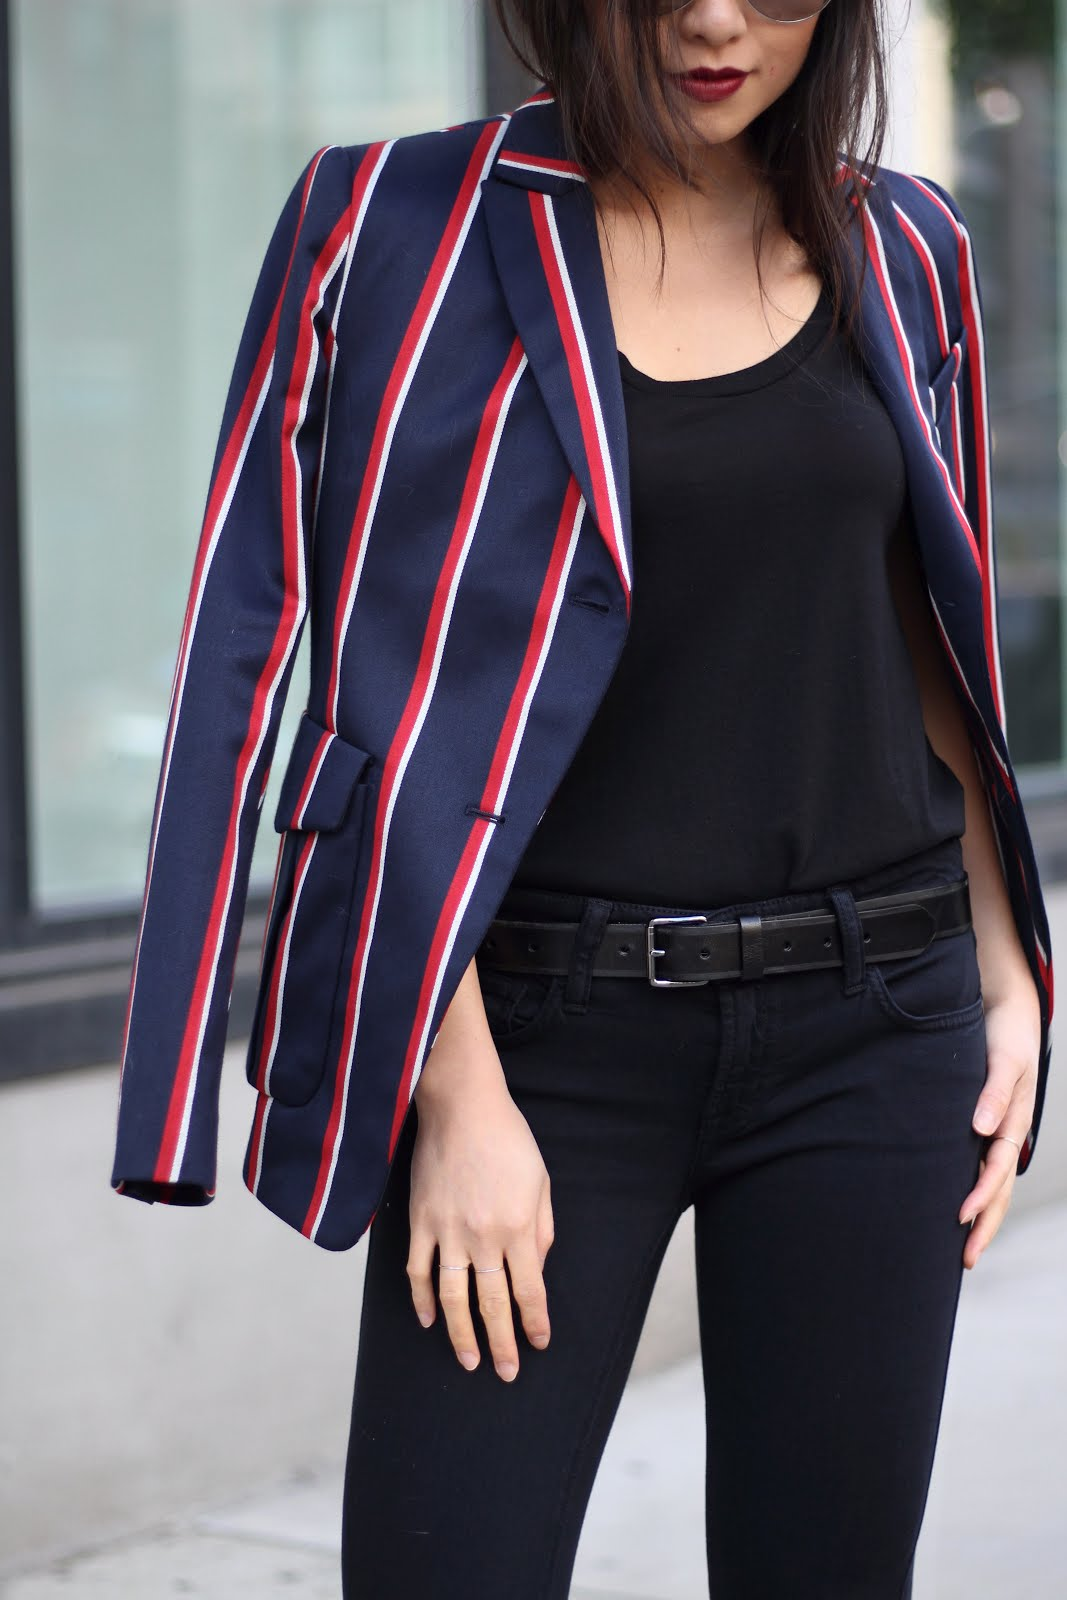 rag and bone howson blazer-snapshots of my closet